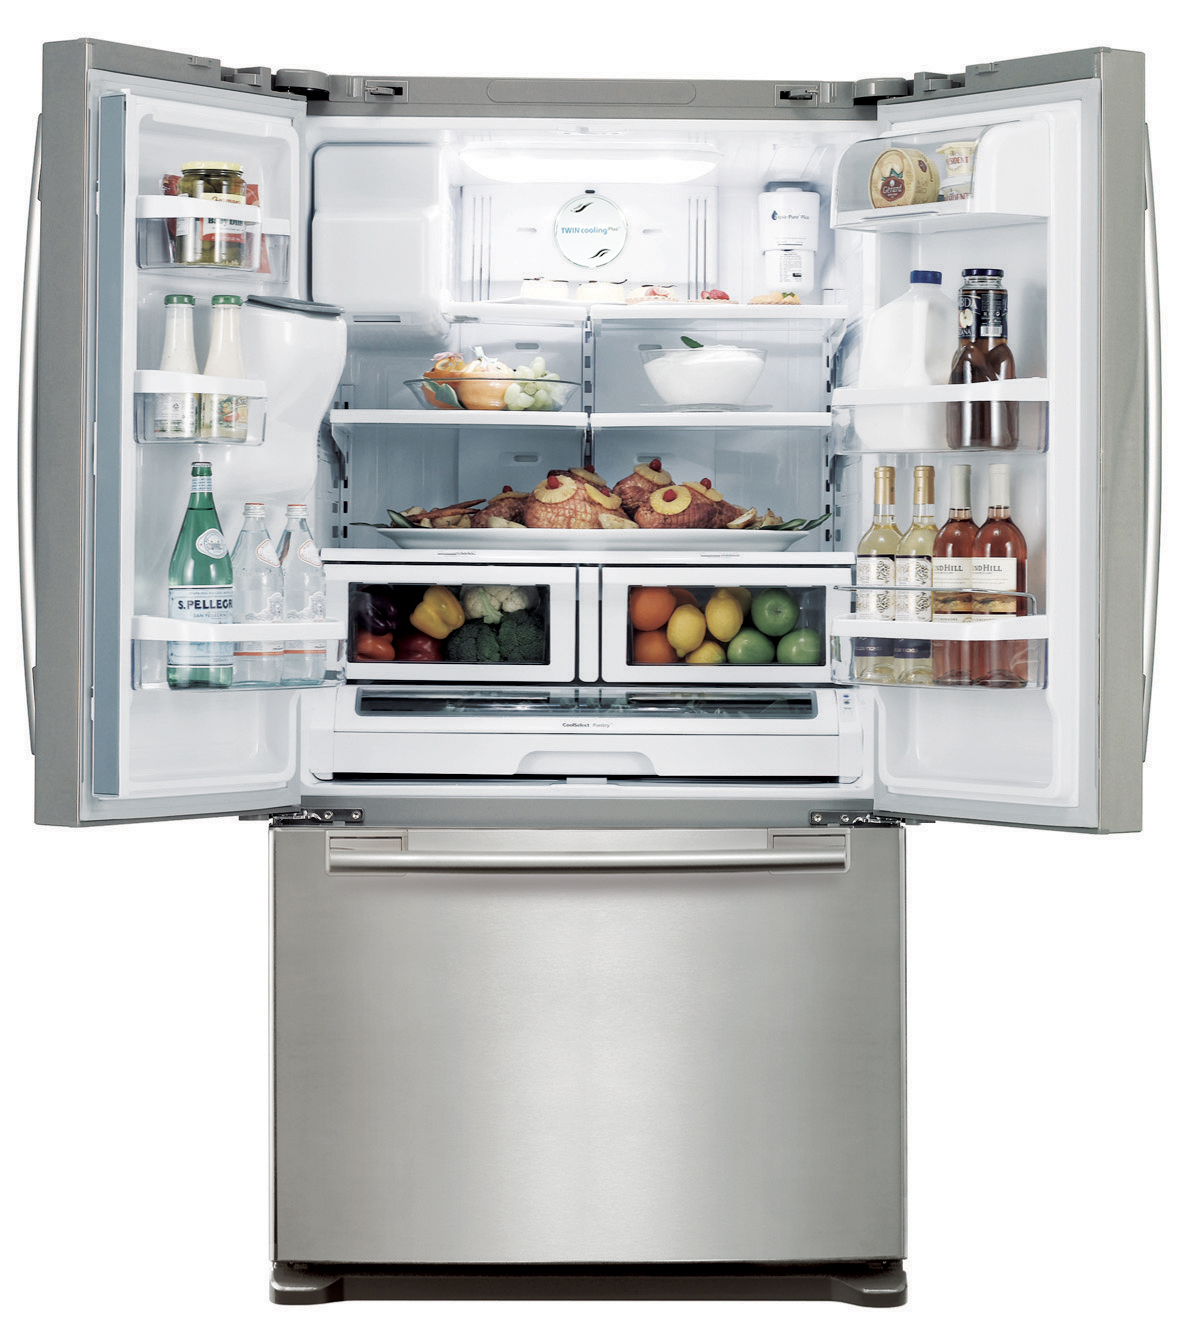 Samsung 26 cu. ft. French Door Refrigerator - Stainless Platinum